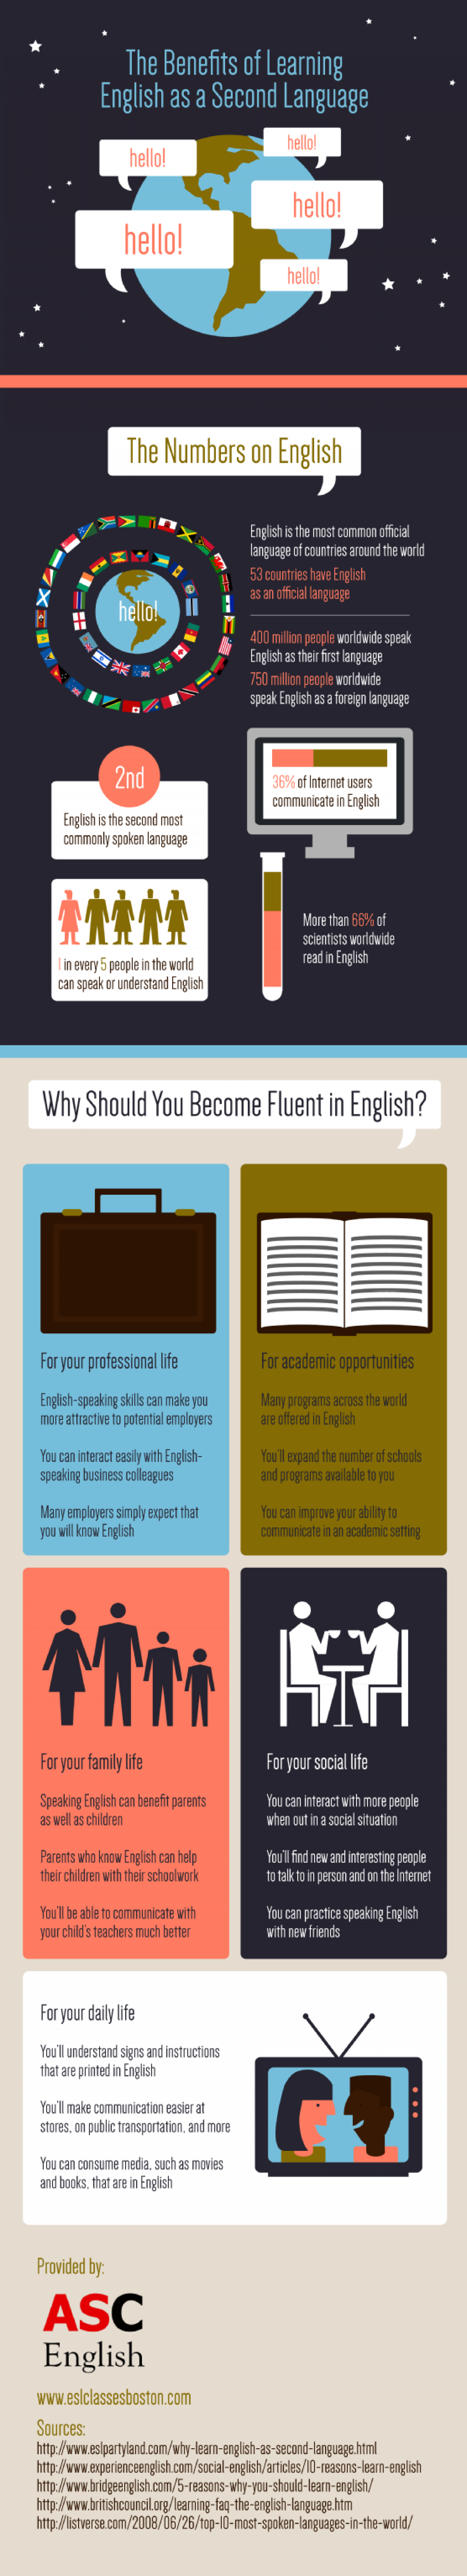 The Benefits of Learning English as a Second Language Infographic